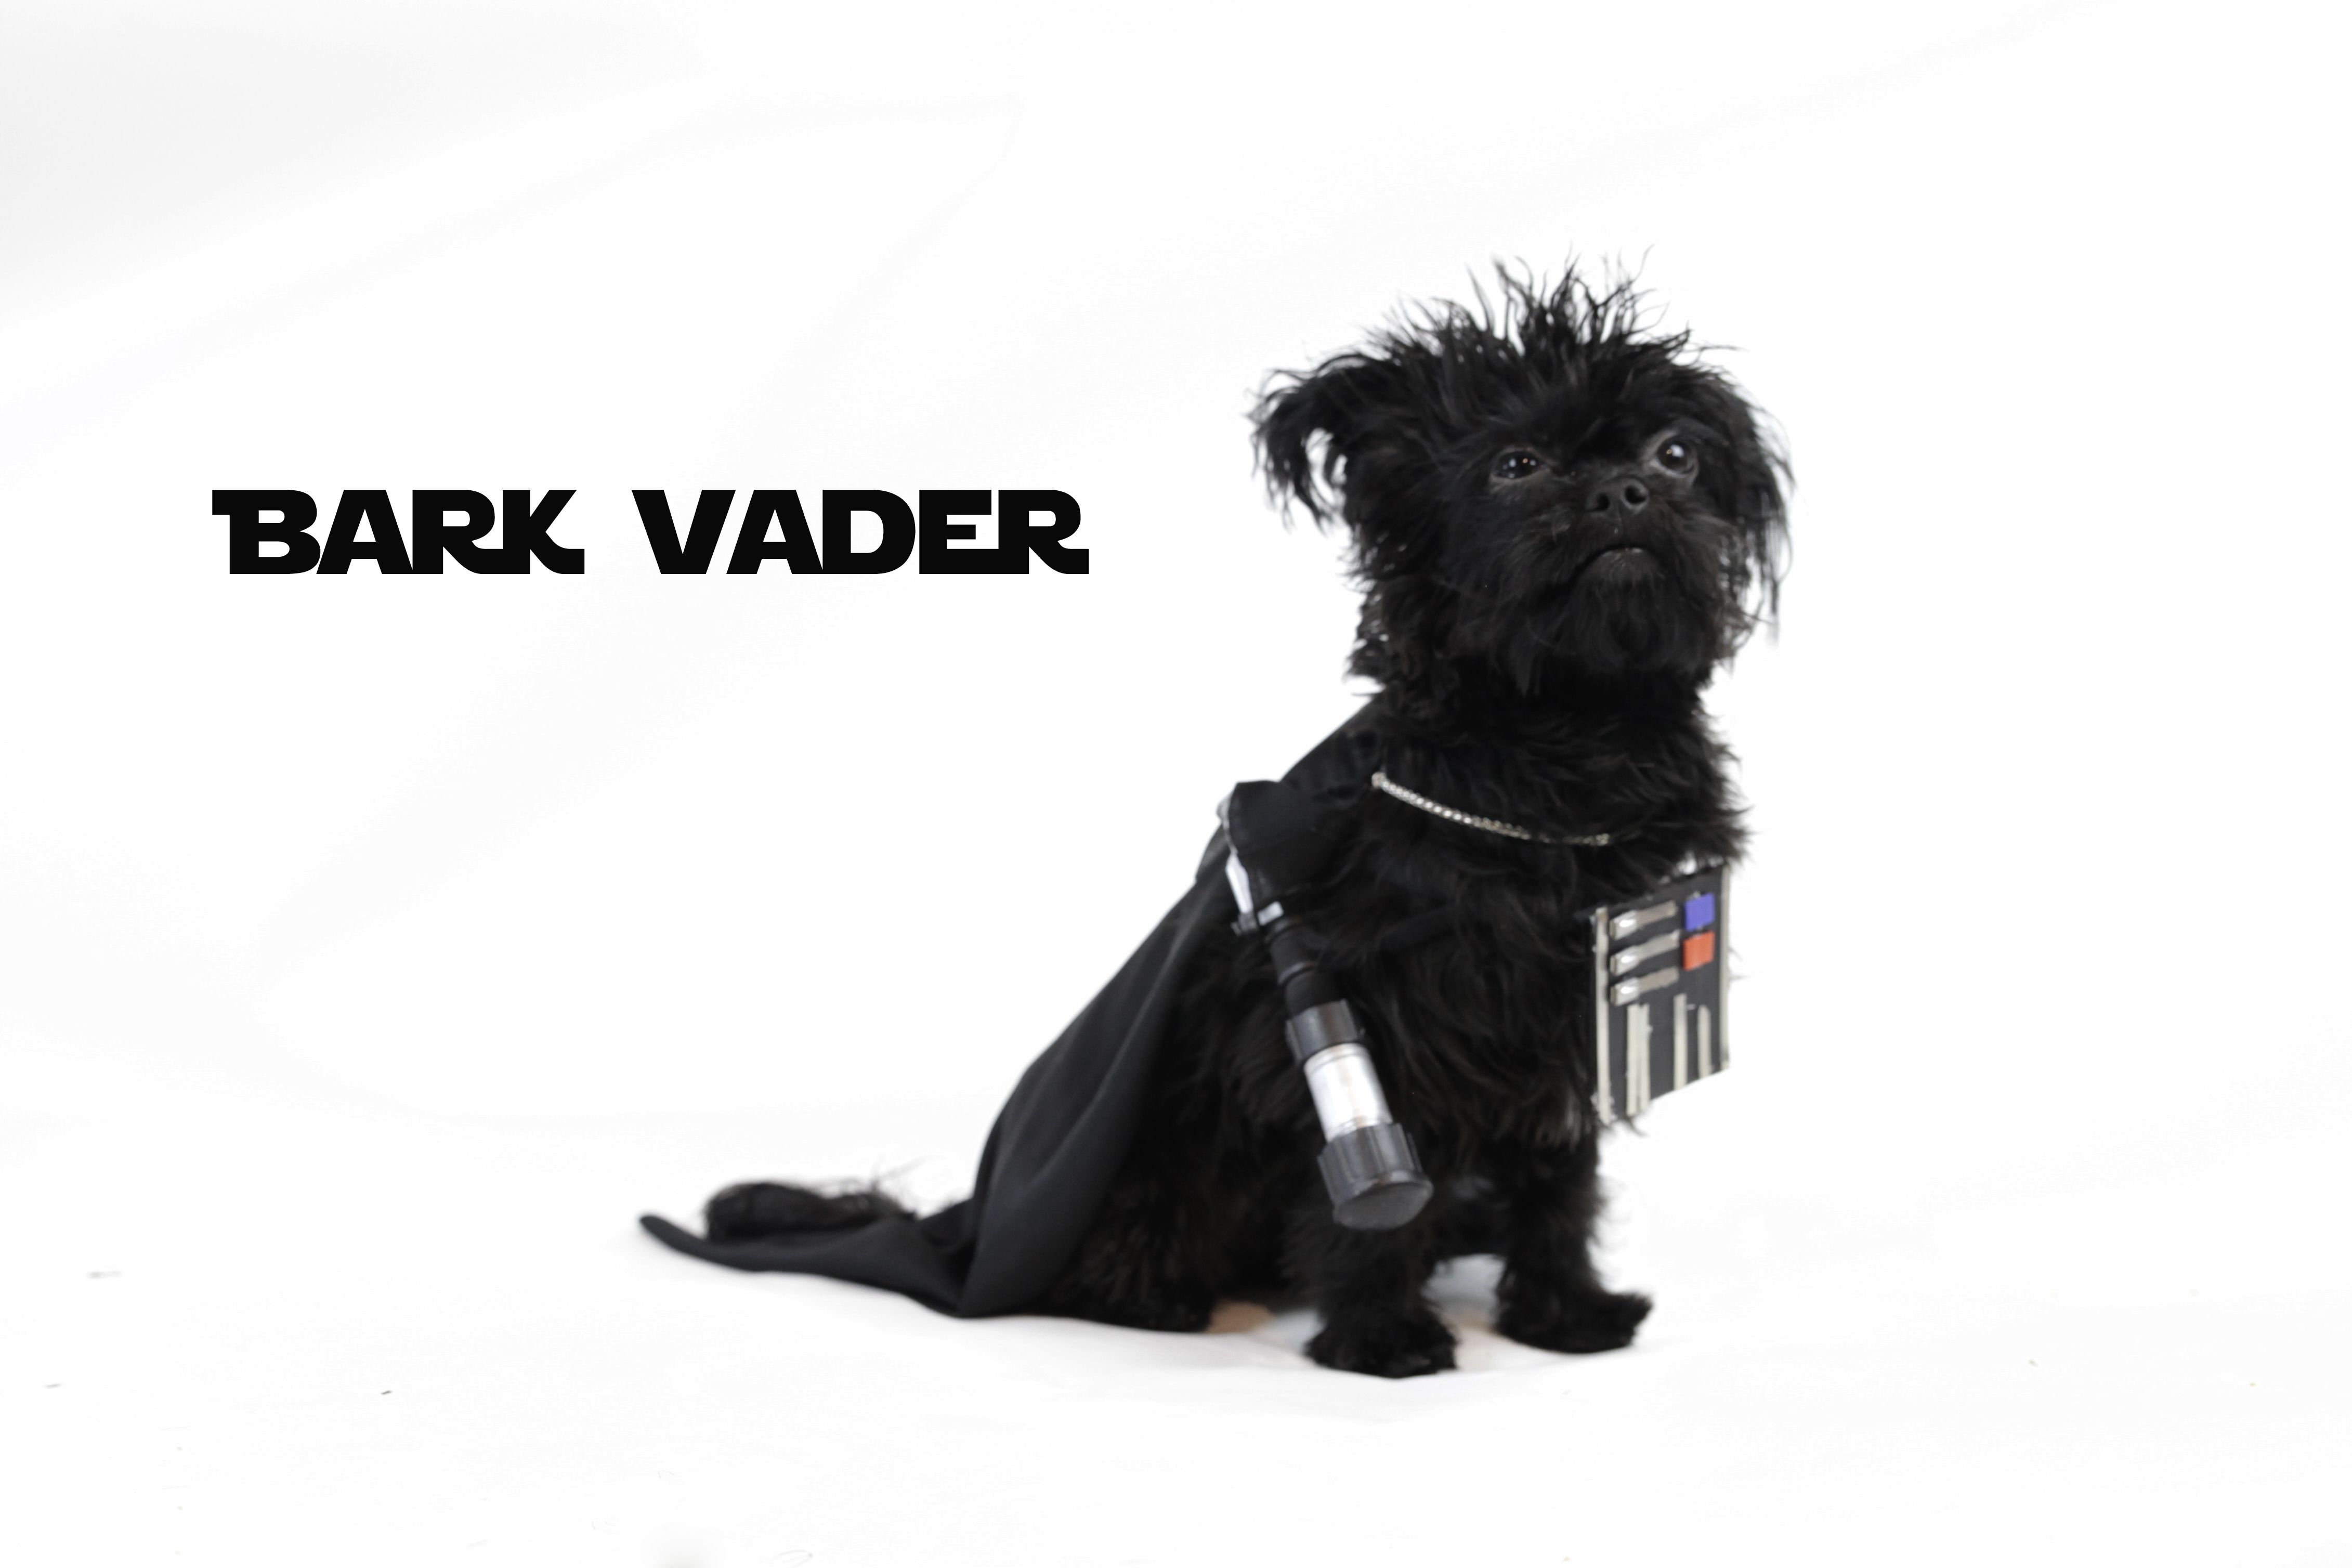 Bark Vader is one of most feared force wielding K9 in the